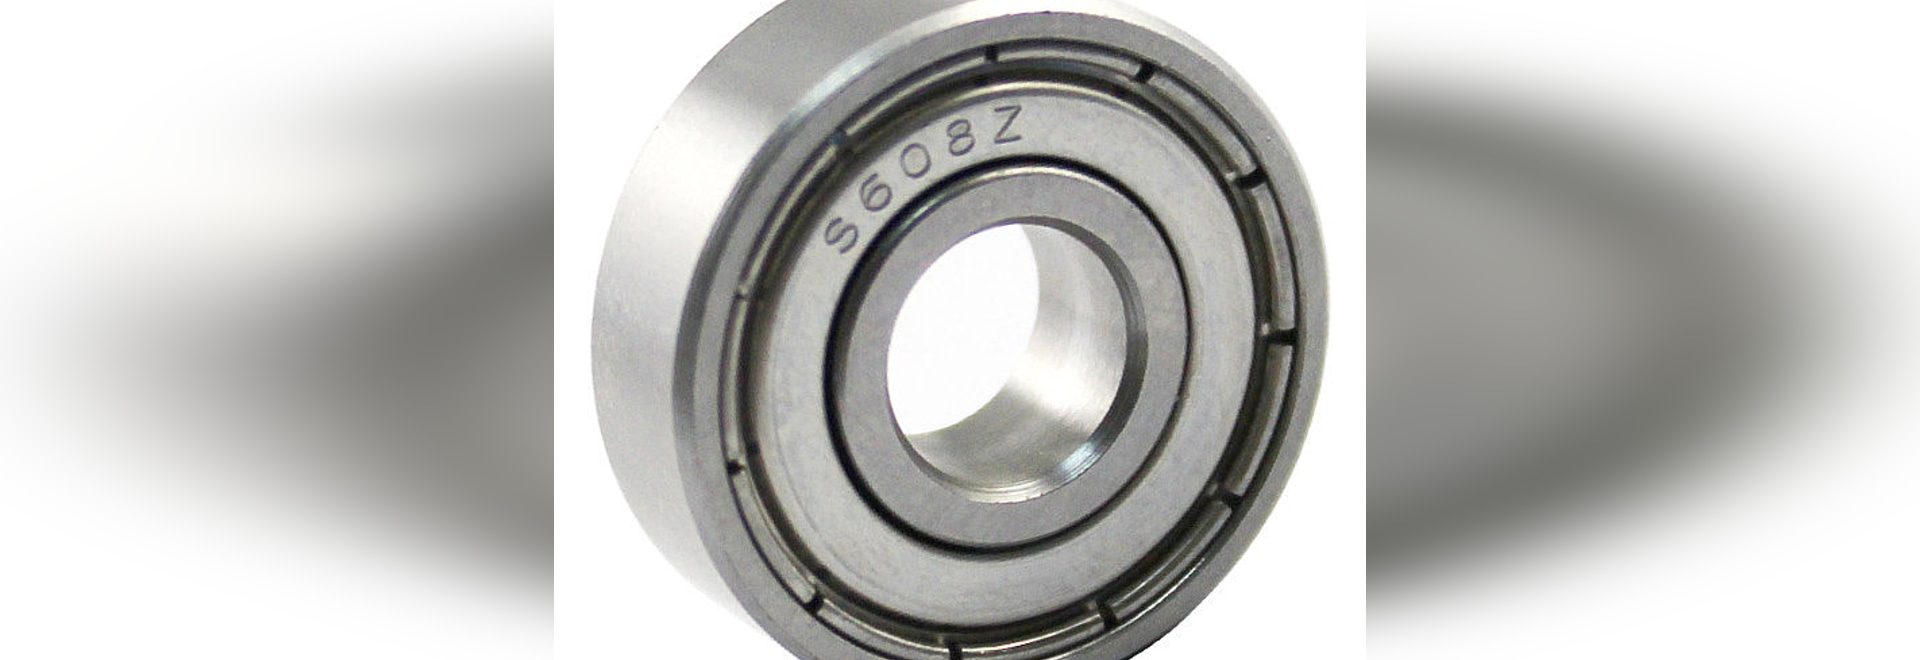 Bearing Machine Neutral S608zz Stainless Steel Ball Bearing Rustproof For Kitchen